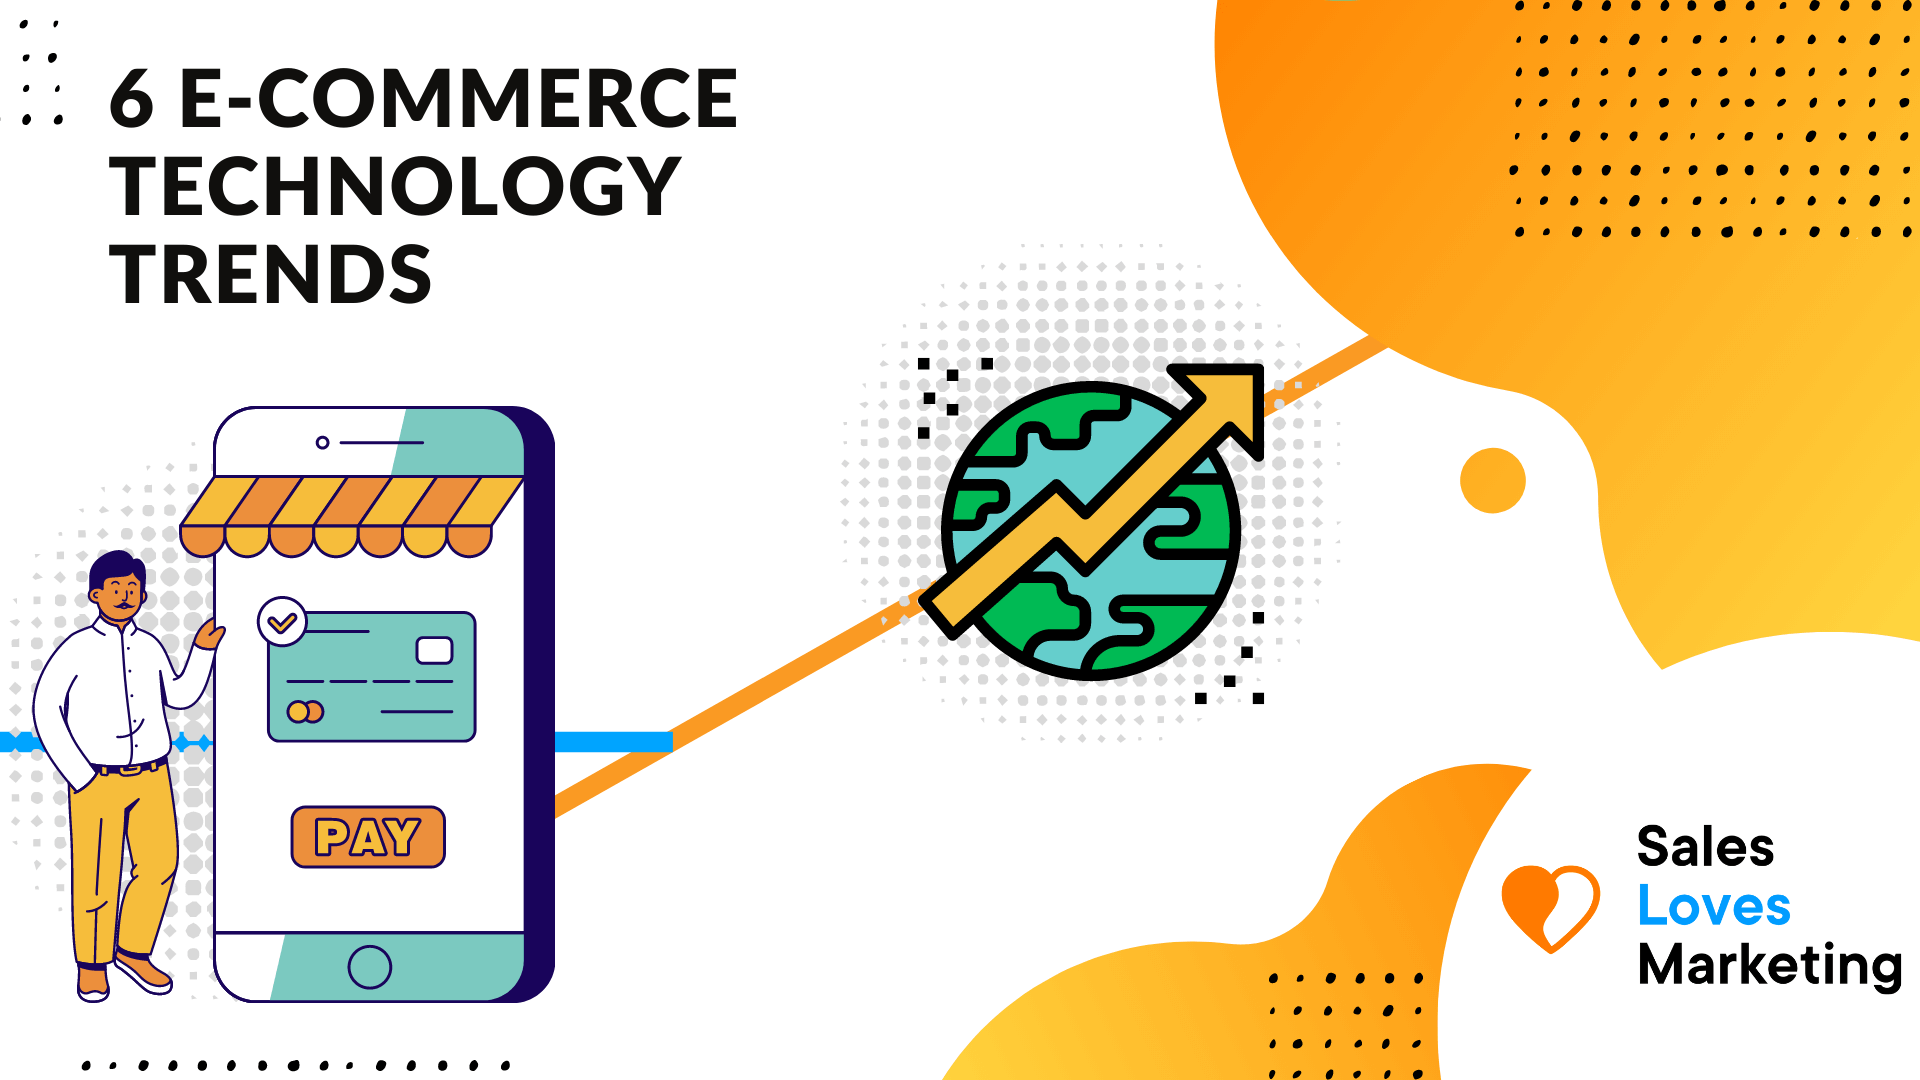 Technology trends that will shape the future of e-commerce.